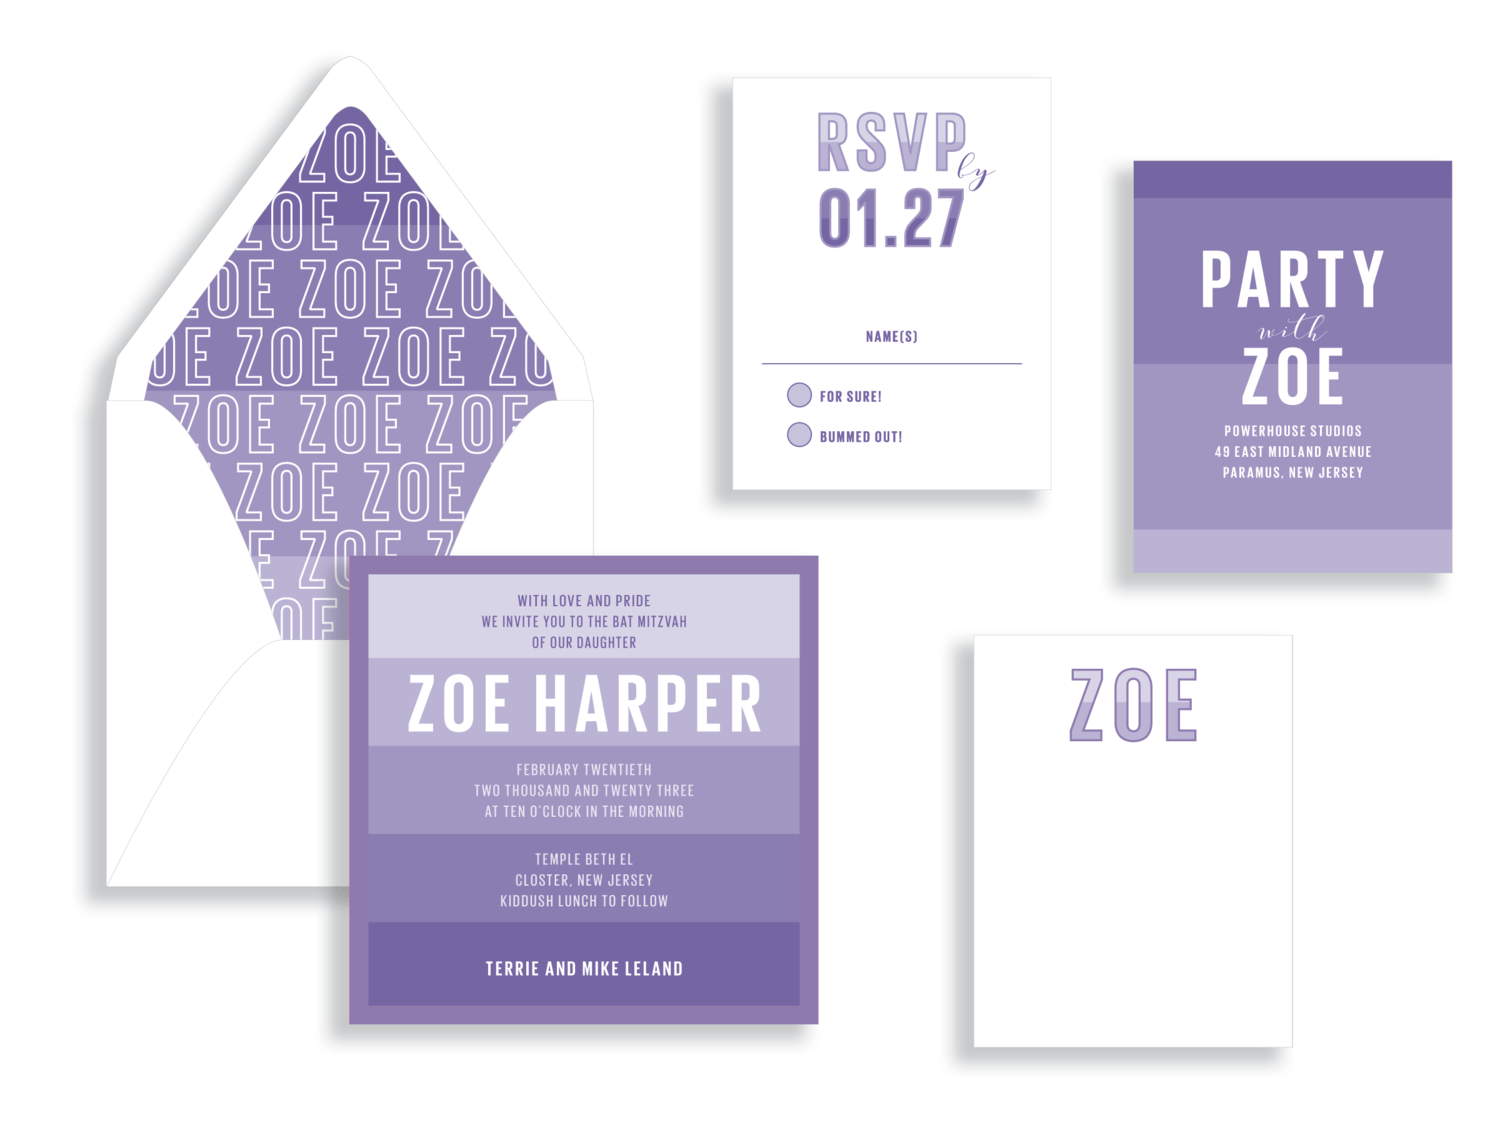 Zoe striped Bat Mitzvah invitation layered onto purple personalize envelope liner.  Bat Mitzvah invitations Northern Virginia Fairfax.